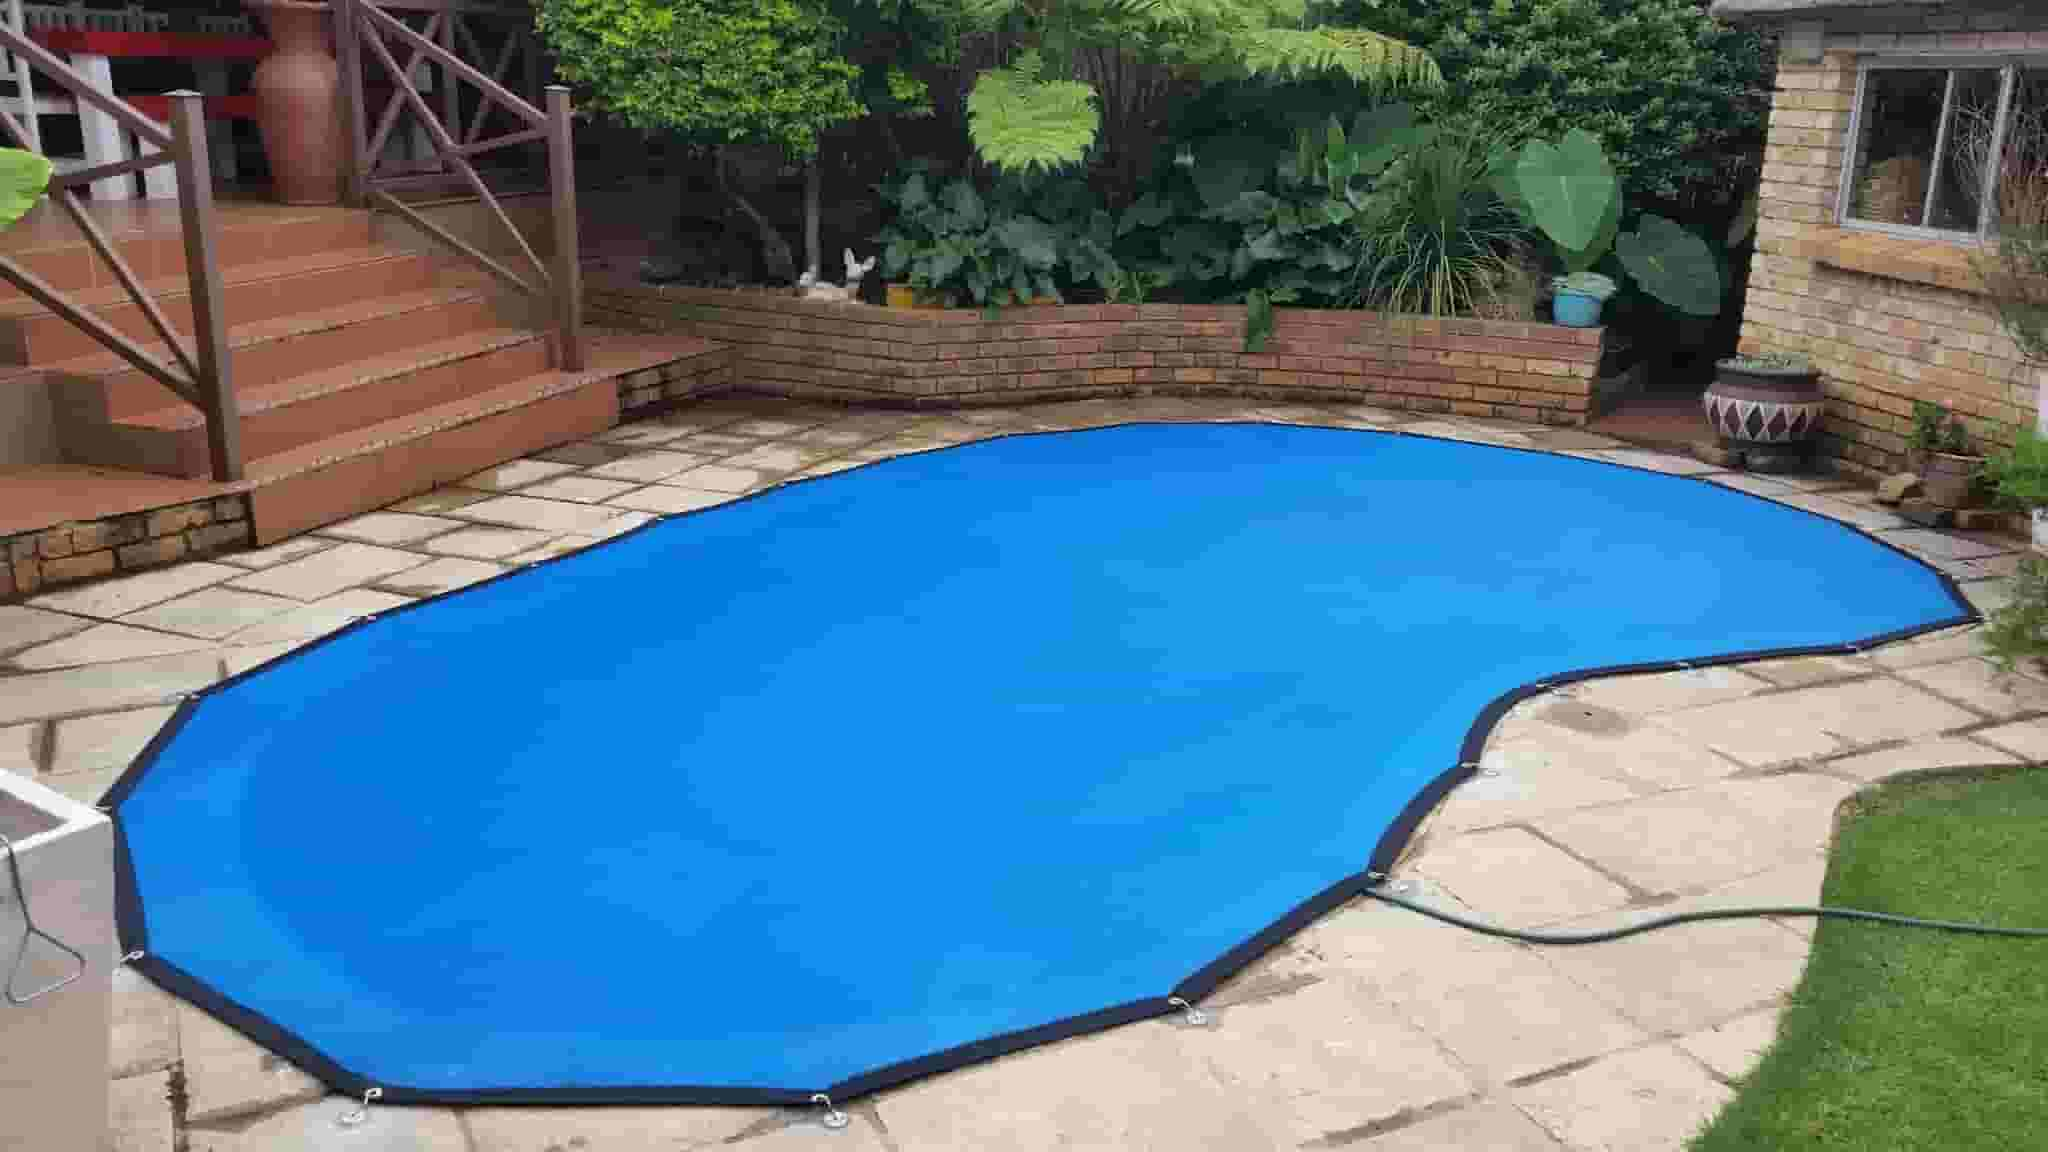 Pool Leaf Net - Pool Leaf Catcher installed by Nets4Pools get yours ...